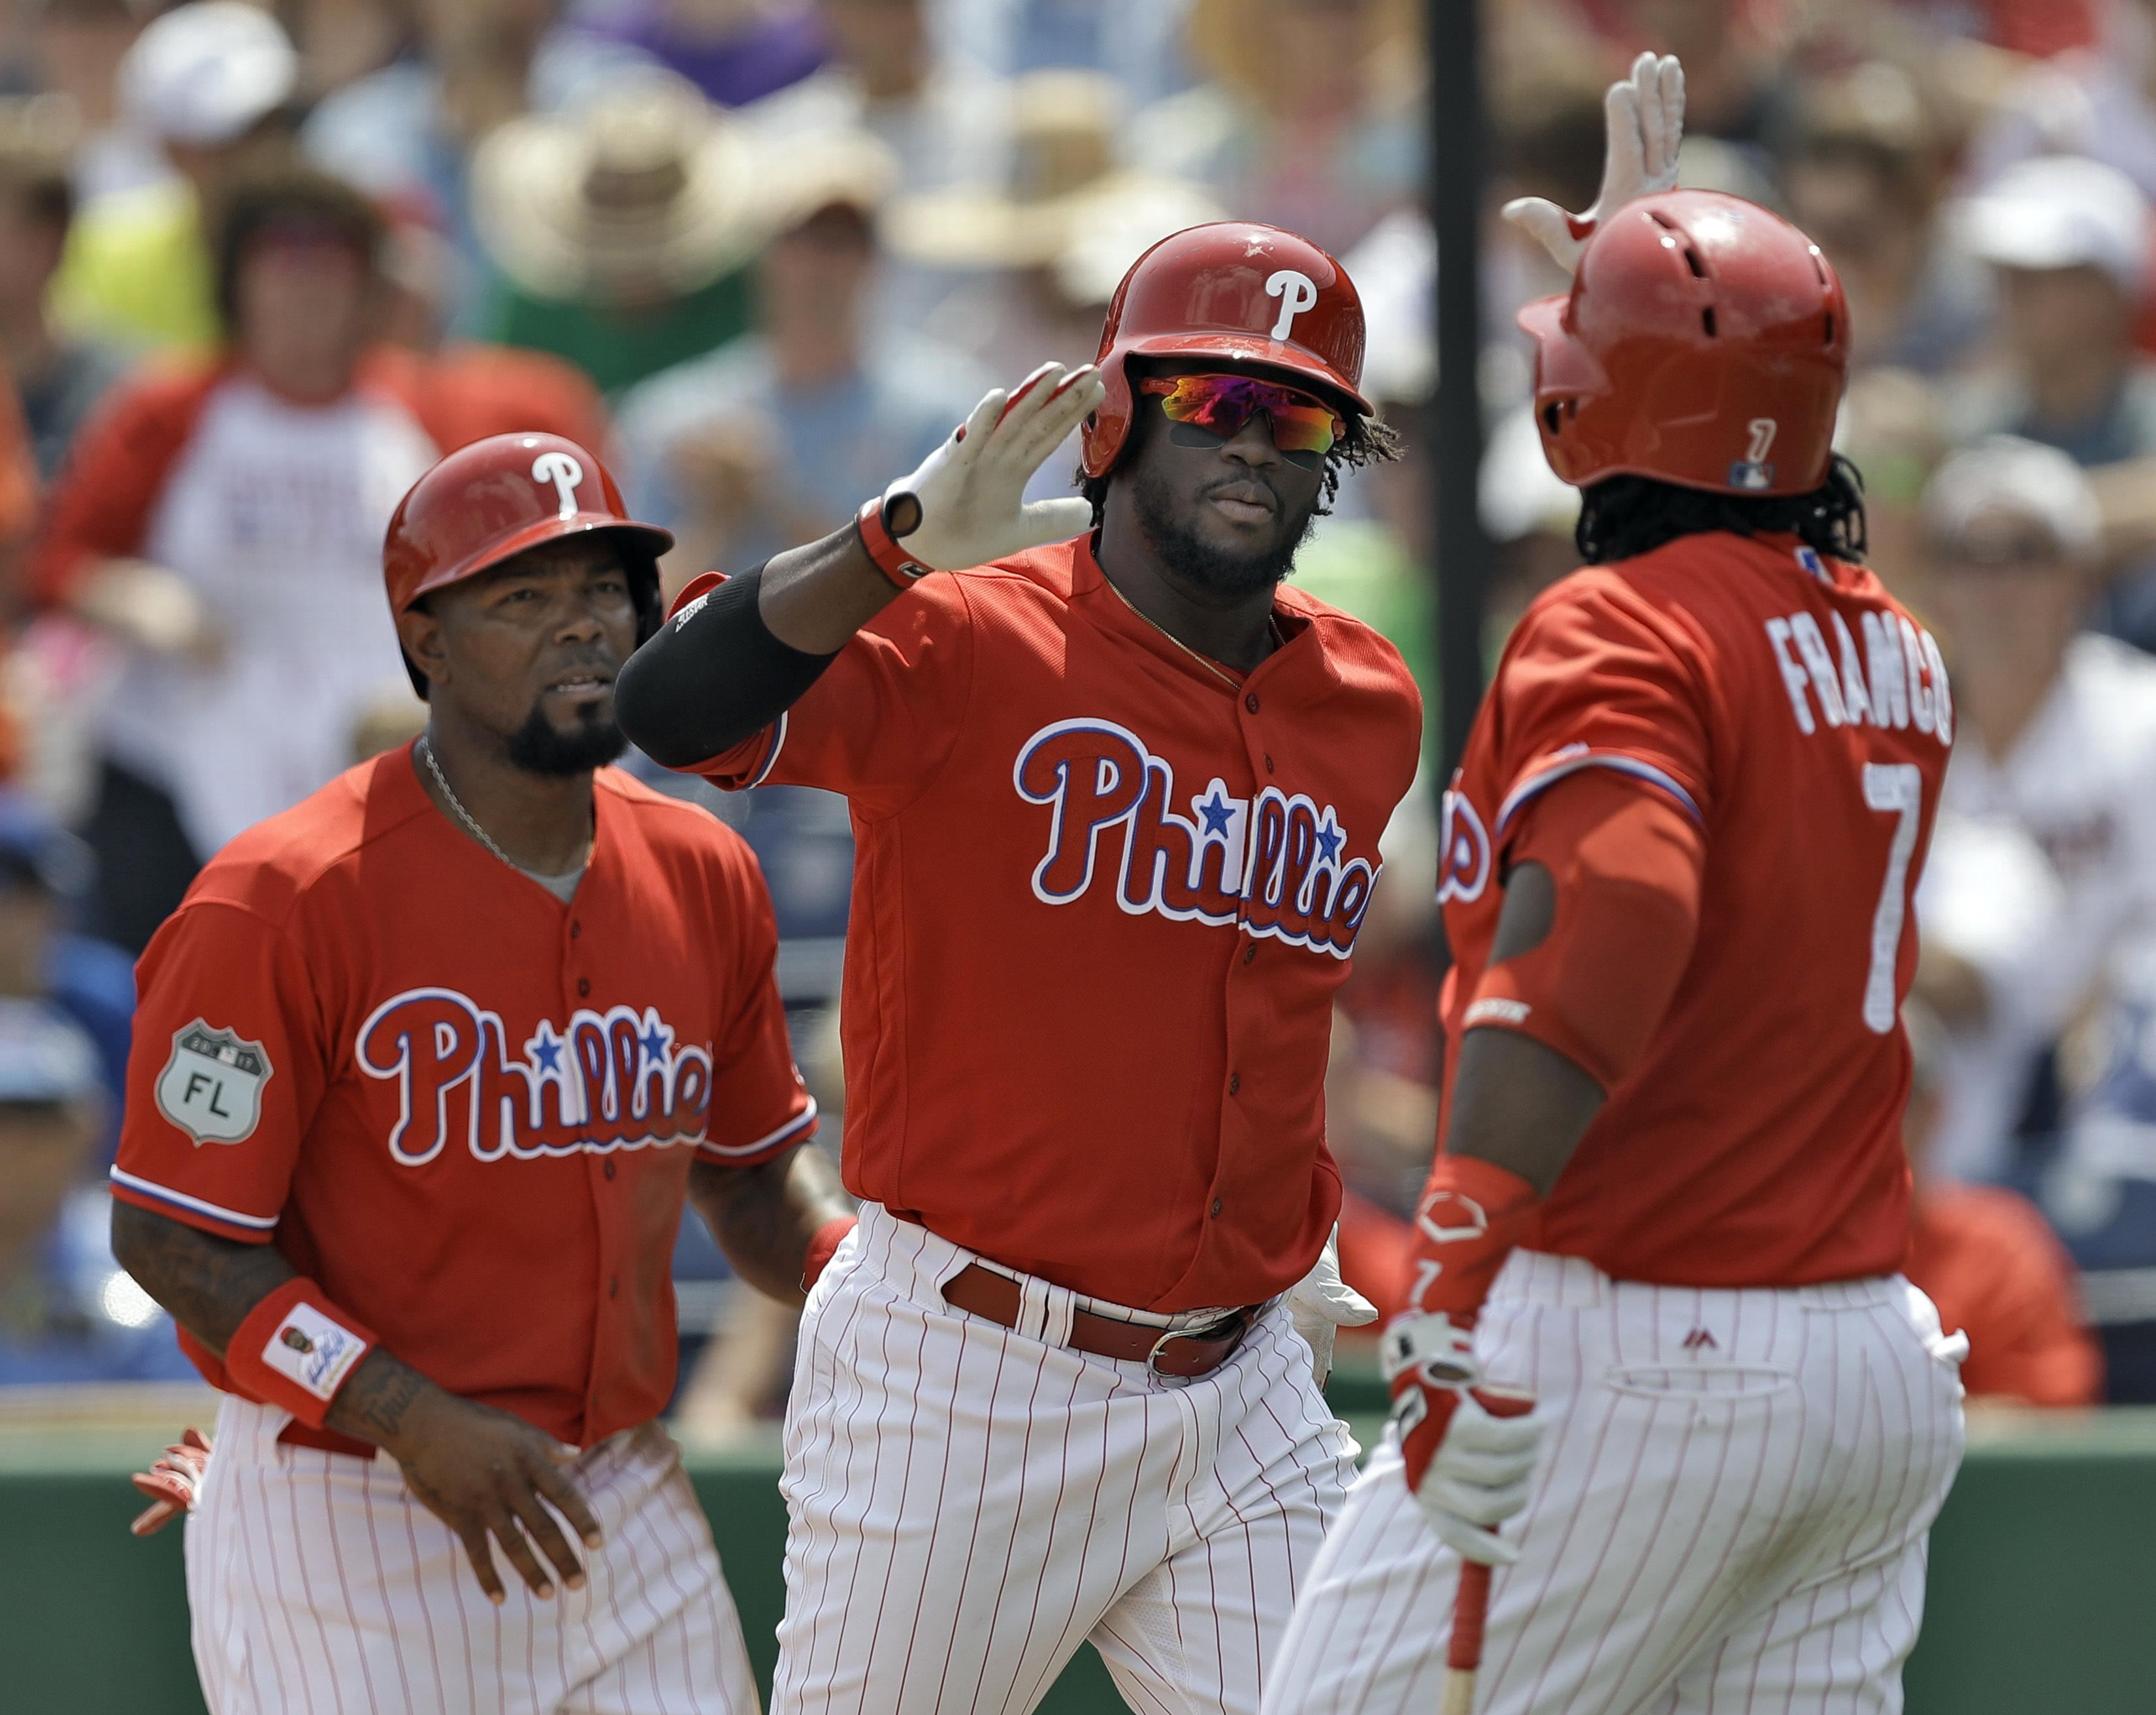 Twins_phillies_spring_baseball_27312